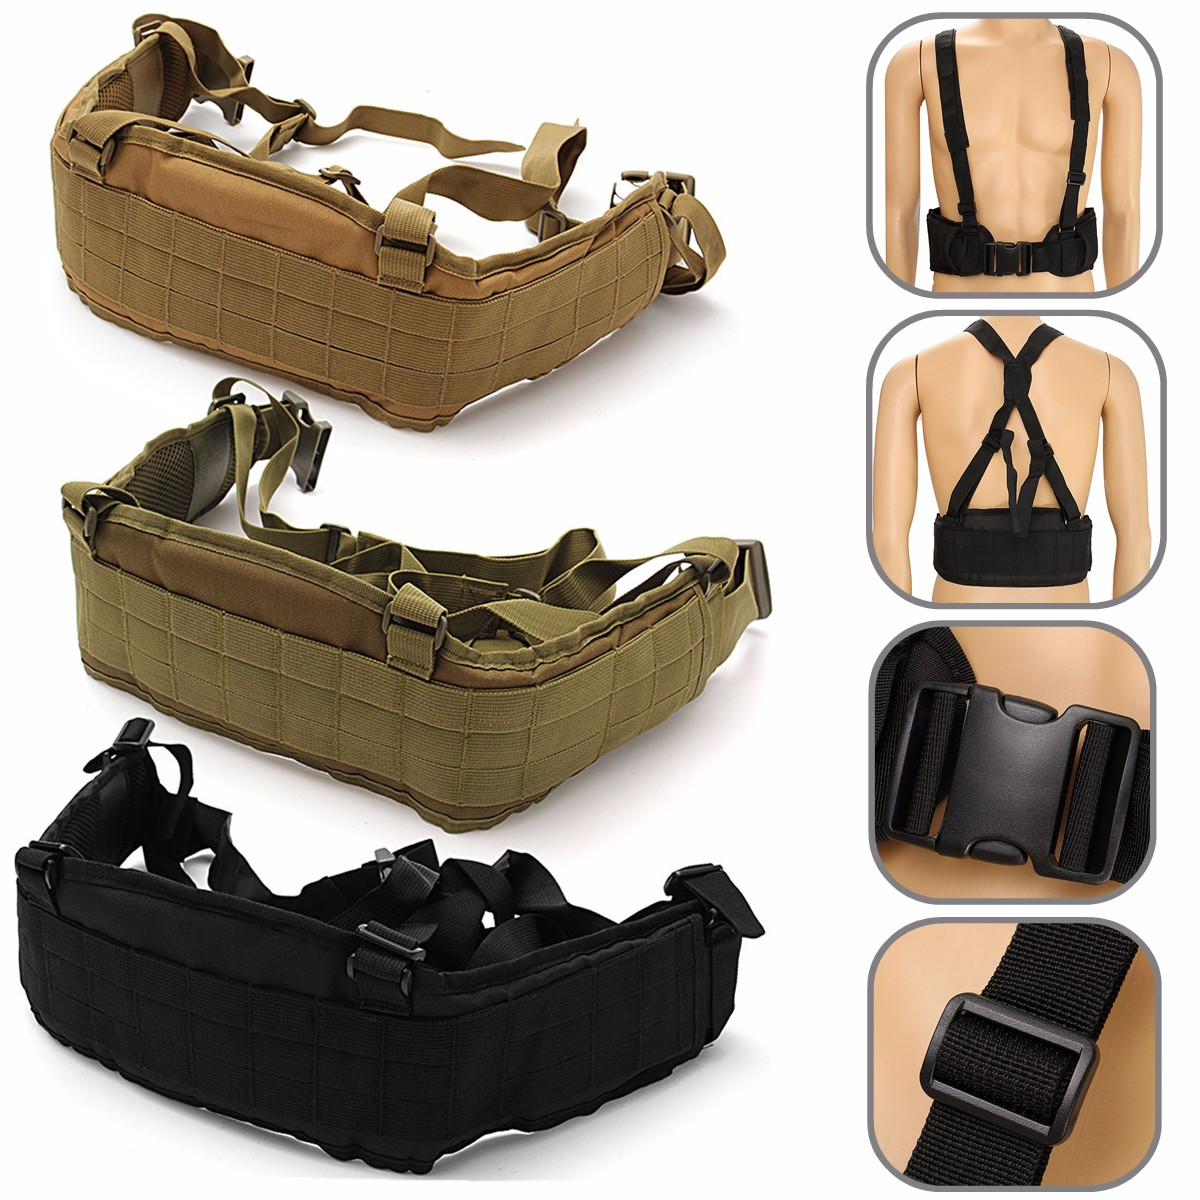 Unisex Oxford Cloth Military Tactical Waist Soft Padded Adjustable Belt With Suspender